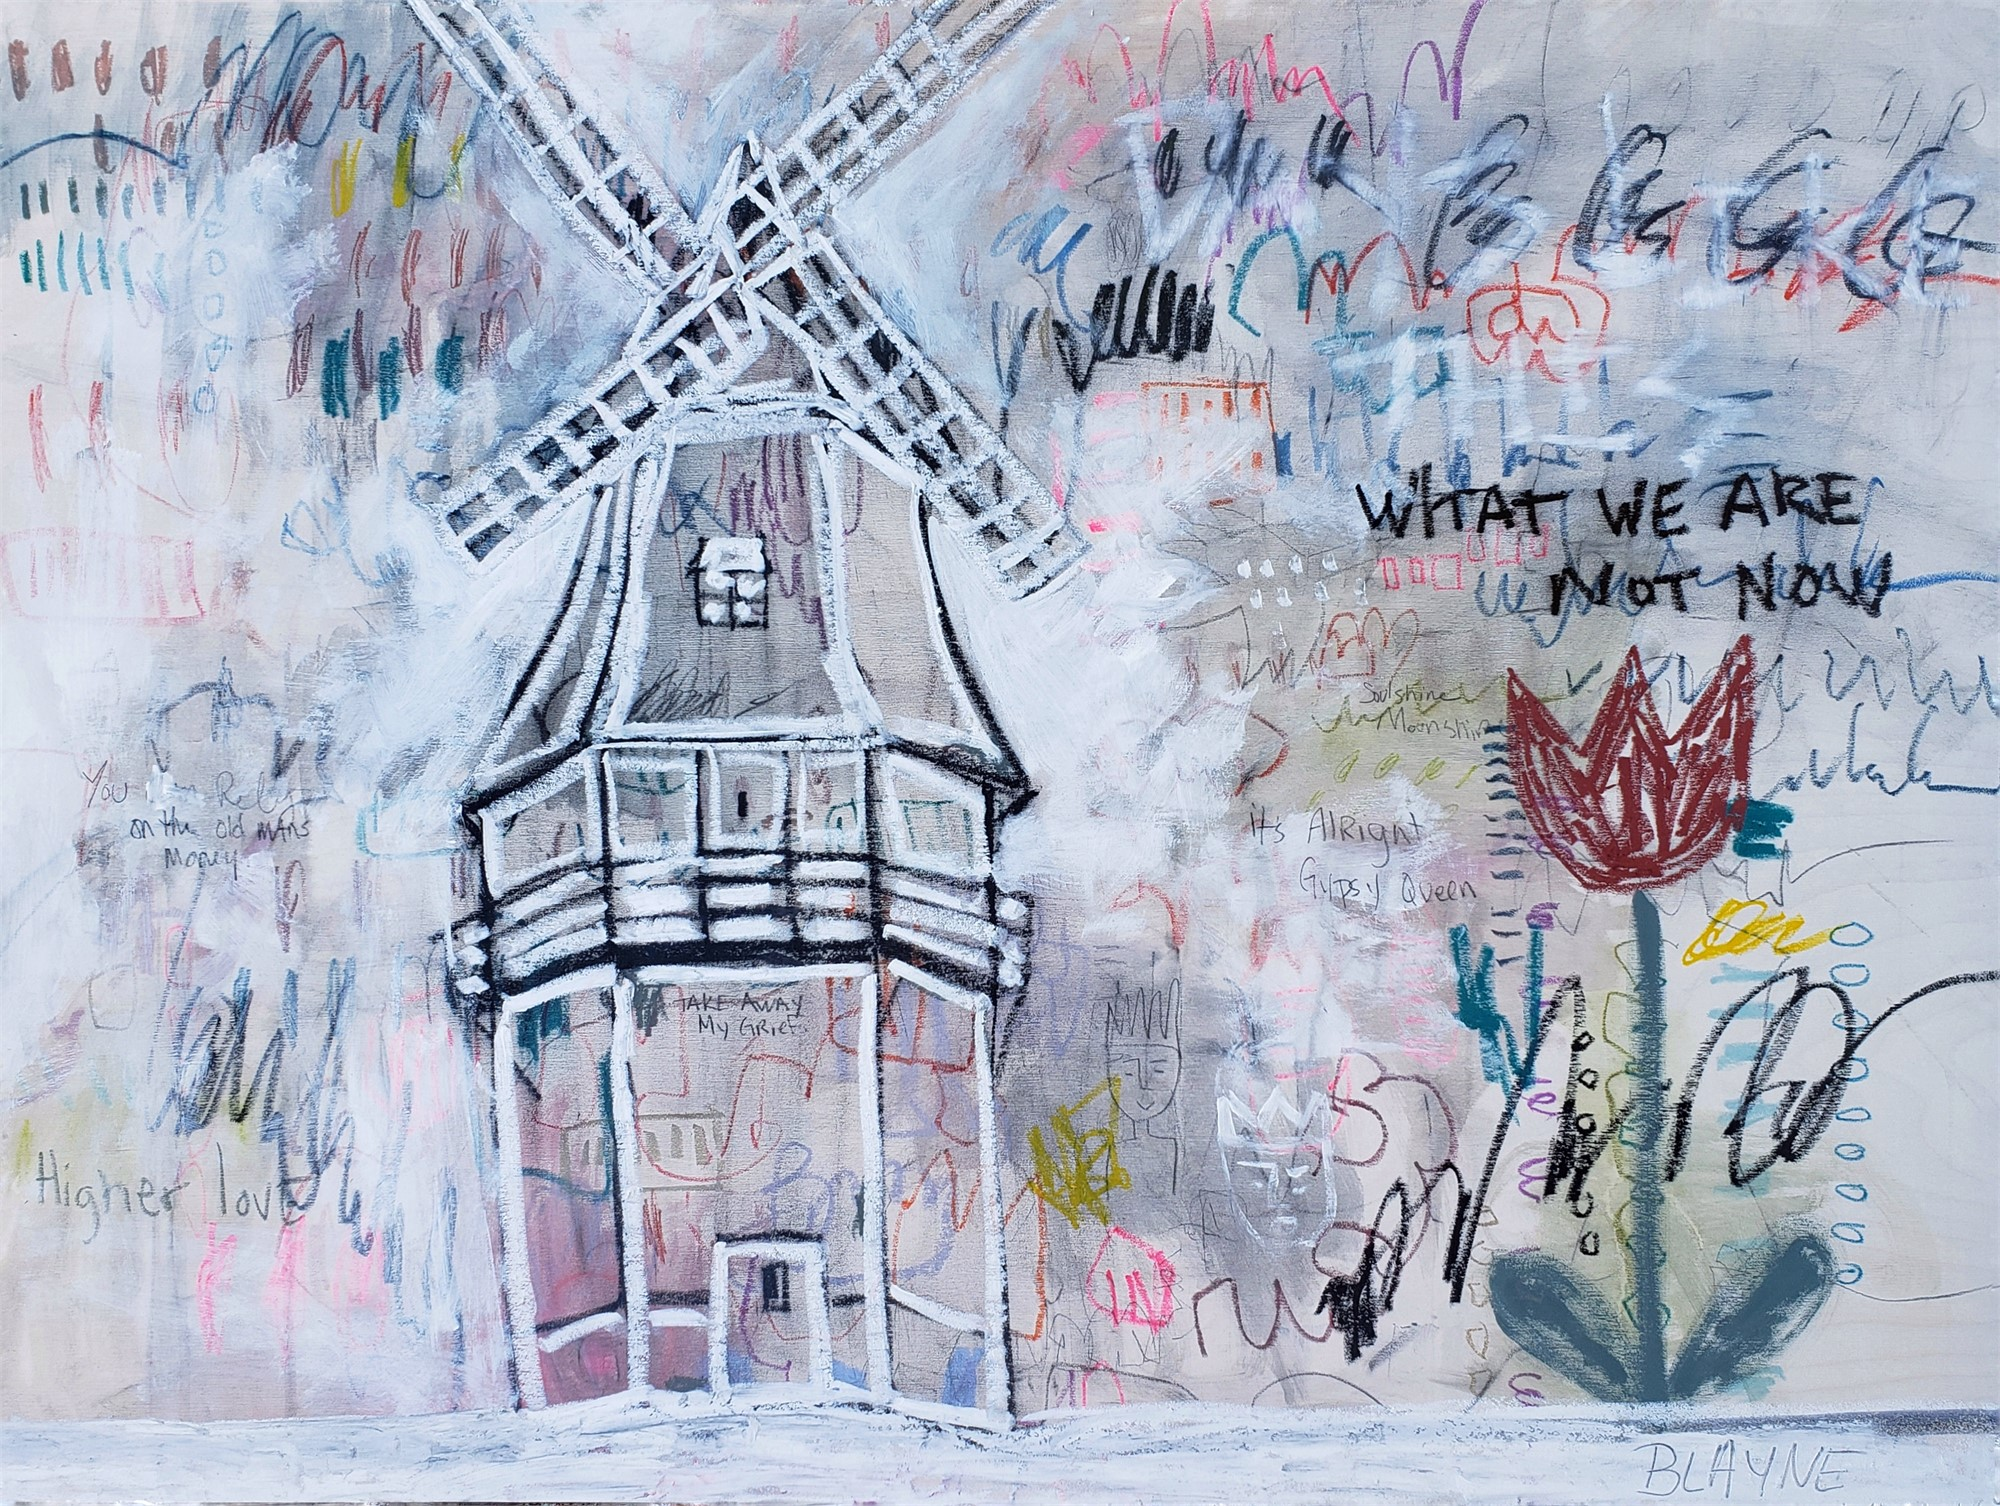 What We Are Not Now - 18x24 UNSIGNED Print (Including Shipping) by Blayne Macauley